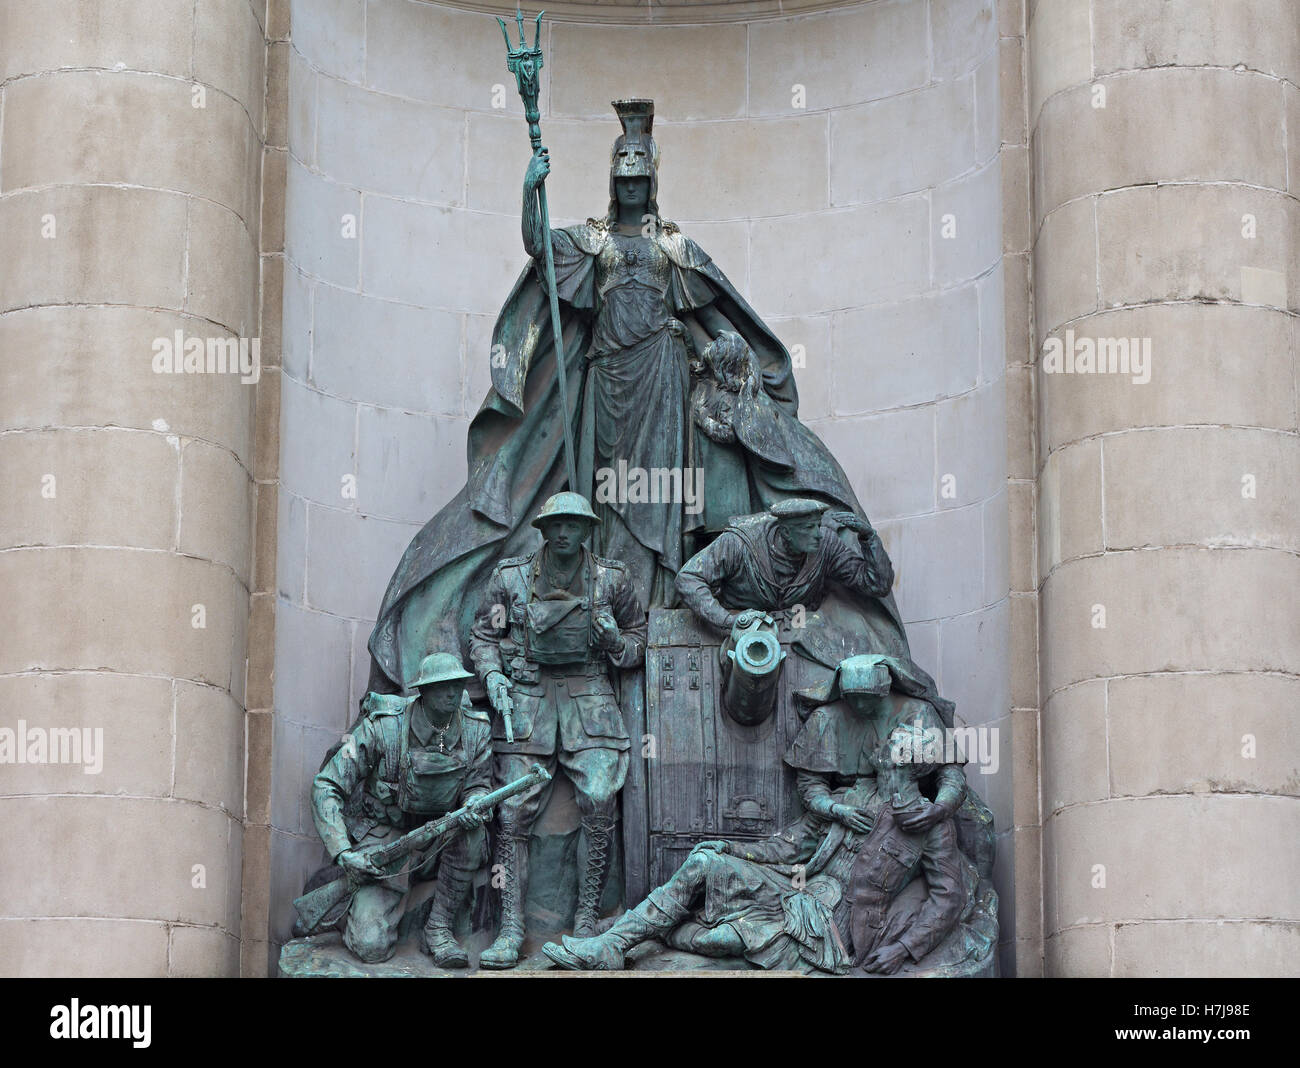 Statue In remembrance of members of the Liverpool Exchange Newsroom at Exchange Flags Liverpool UK - Stock Image